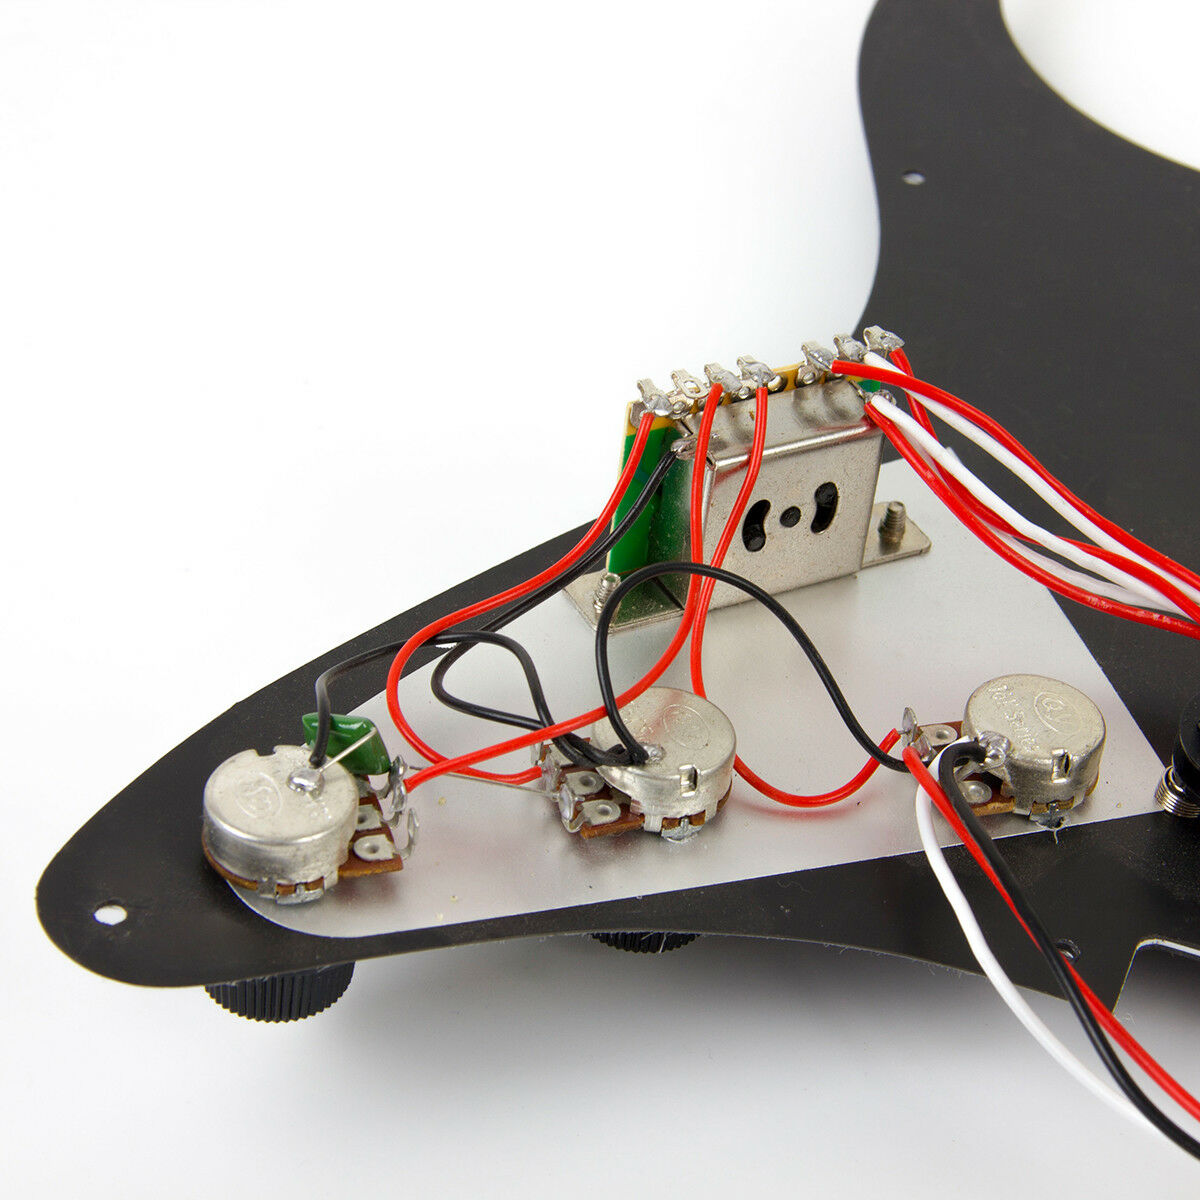 Black Guitar Prewired Loaded Pickguard For Fender Stratocaster Parts Wiring Harness Pickup 1v2t 5 Way Switch 500k Pots Strat Description